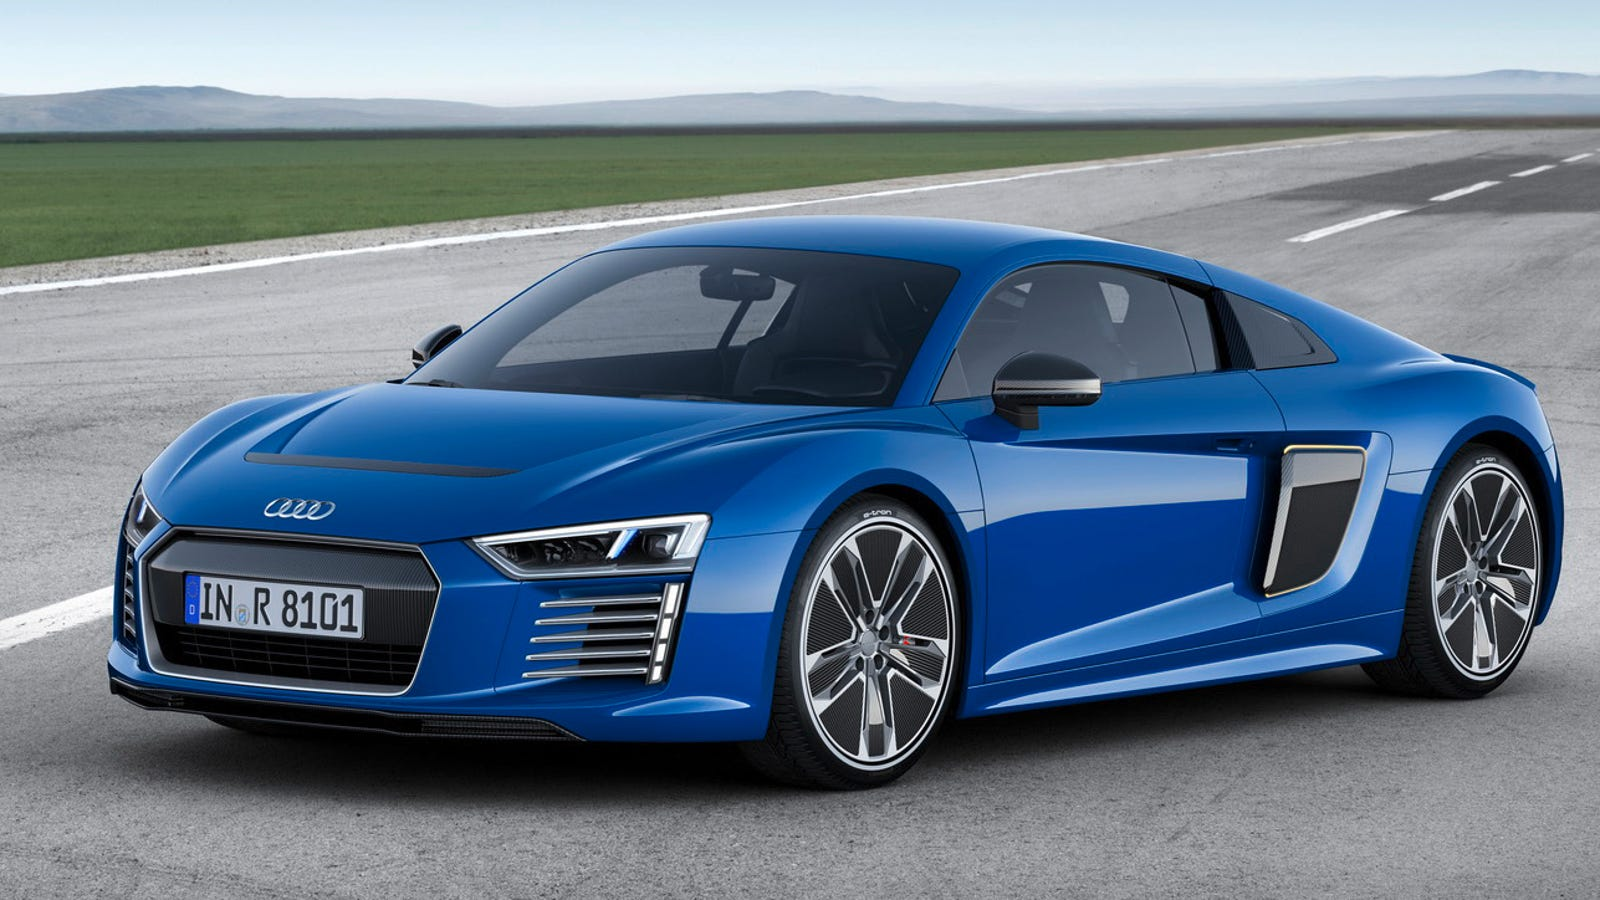 2016 audi r8 e tron this is audi 39 s 456 hp electric supercar future. Black Bedroom Furniture Sets. Home Design Ideas